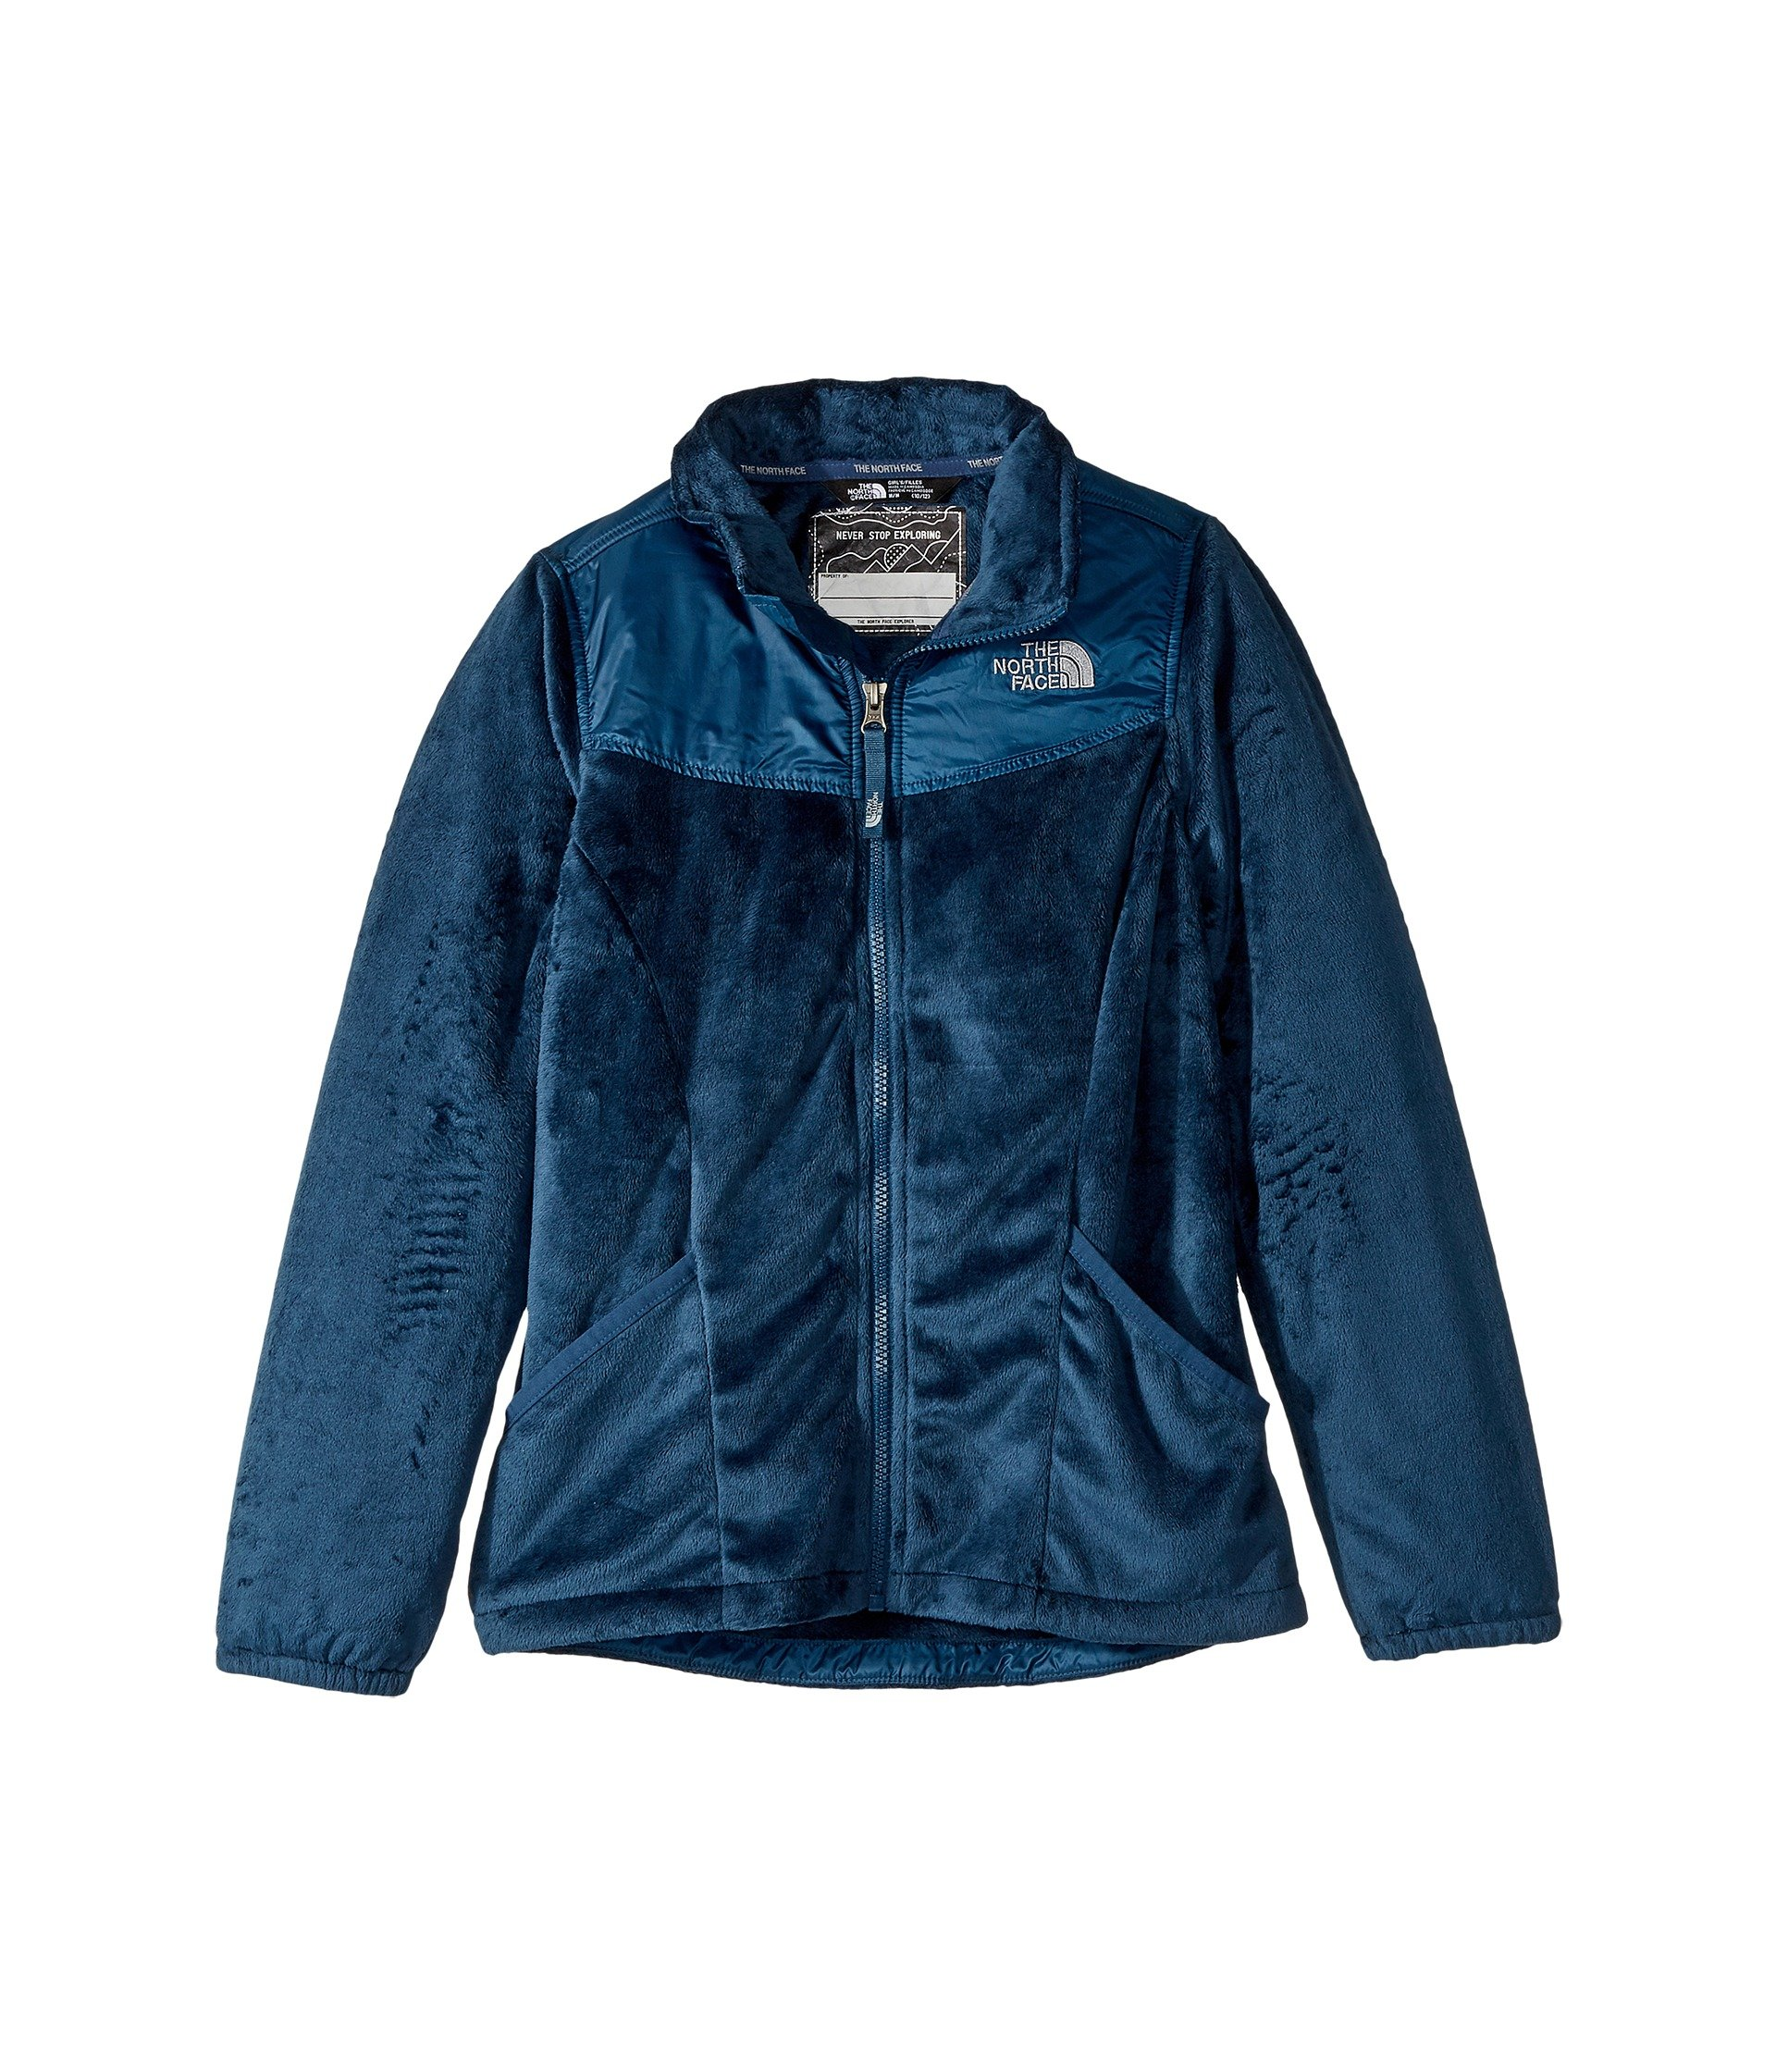 The North Face Girl's Osolita 2.0 Jacket Blue Wing Teal - M